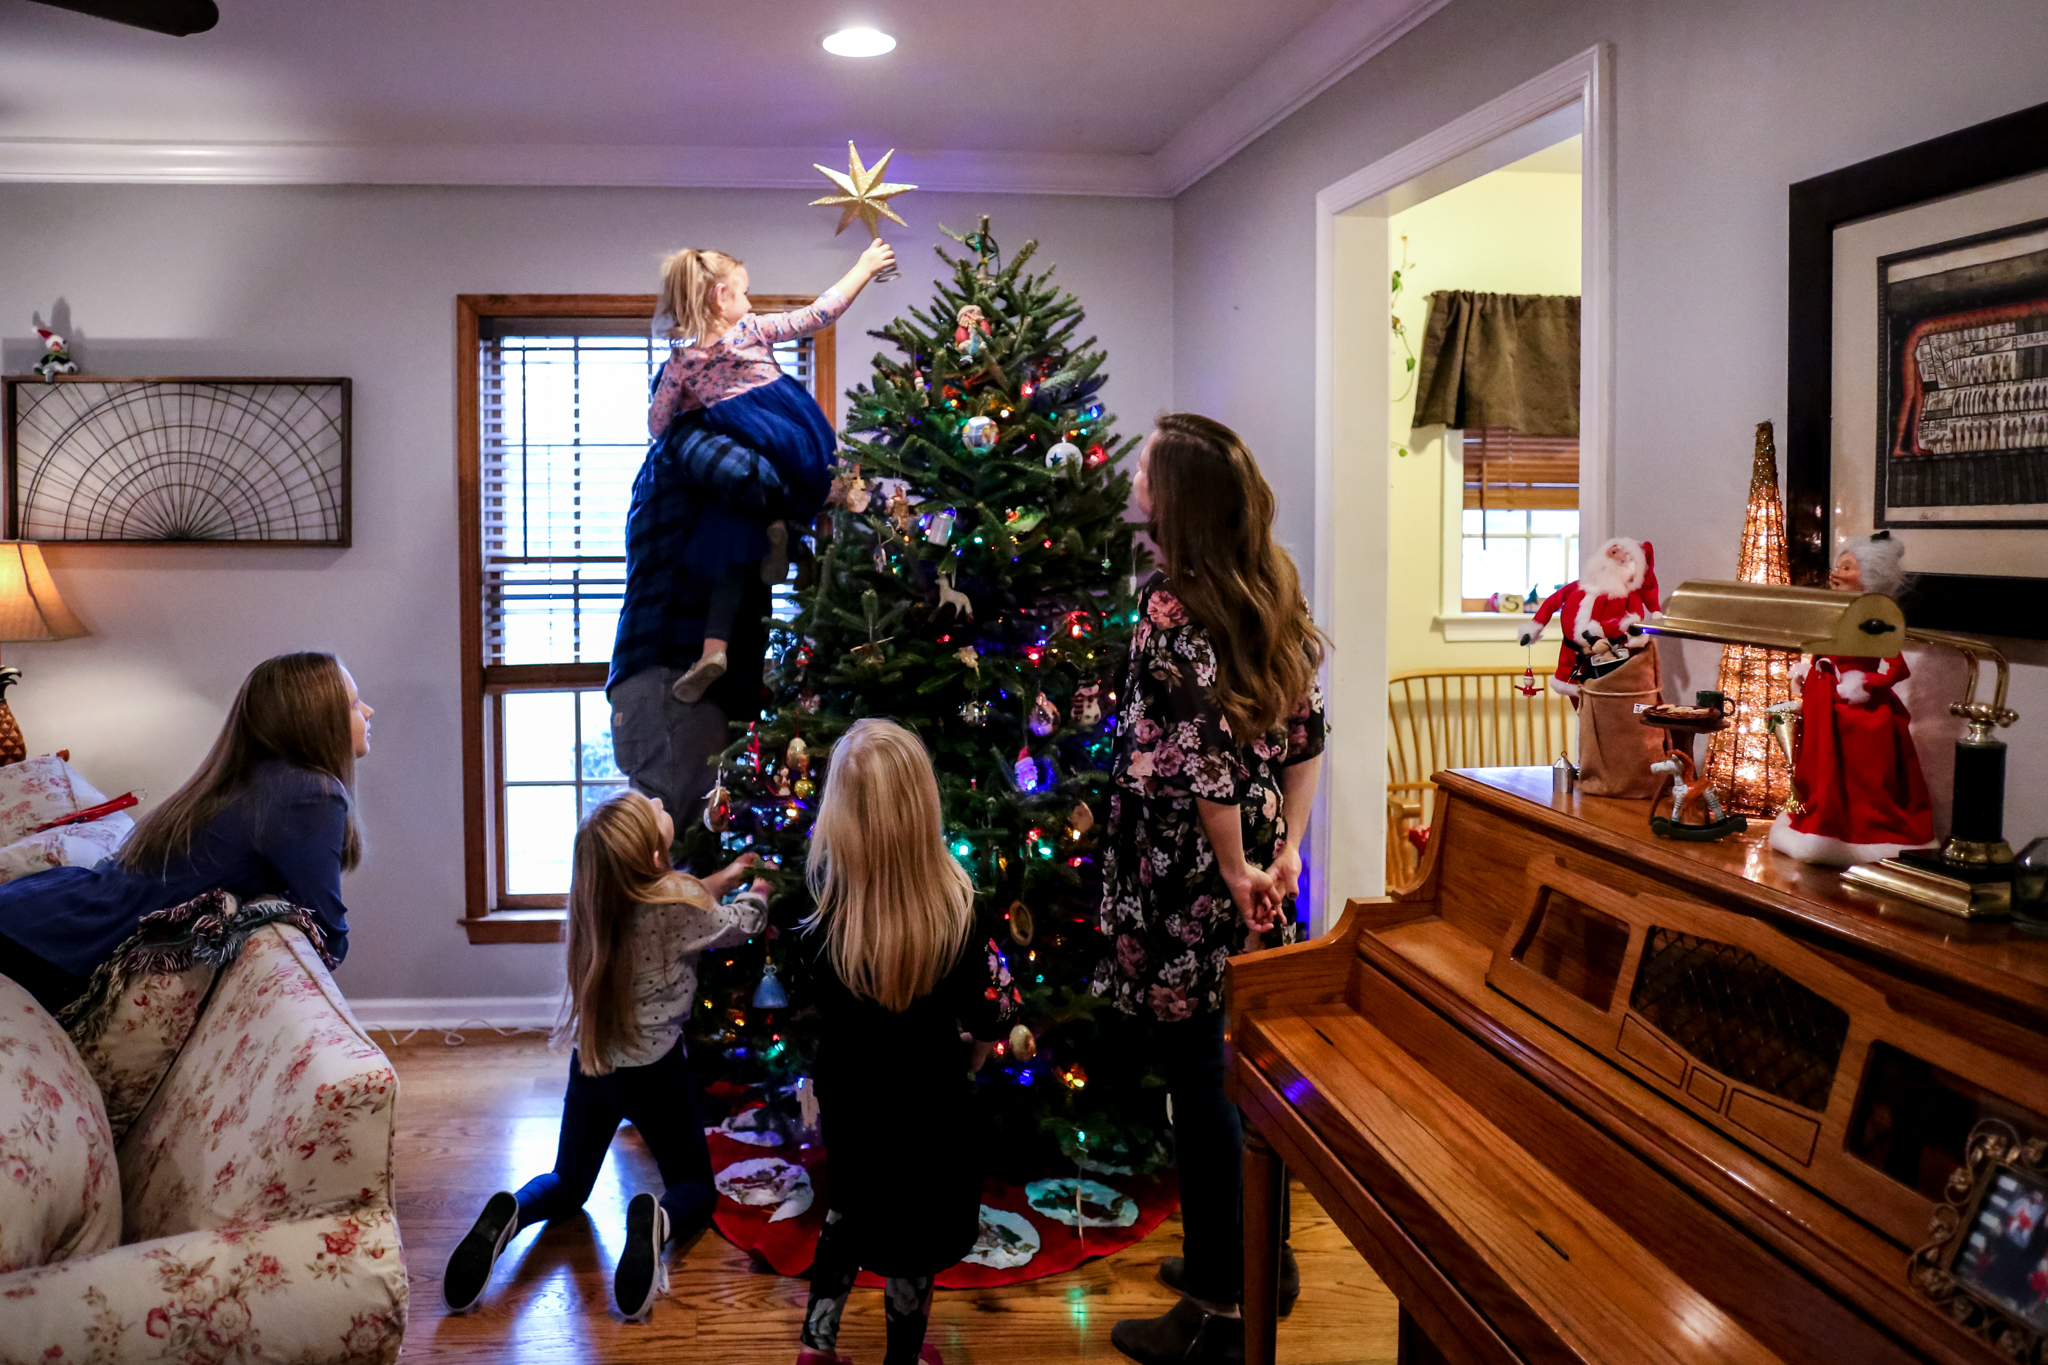 Young girl puts the star on top of the Christmas tree during an at-home holiday family photo session in Lehigh Valley, PA.